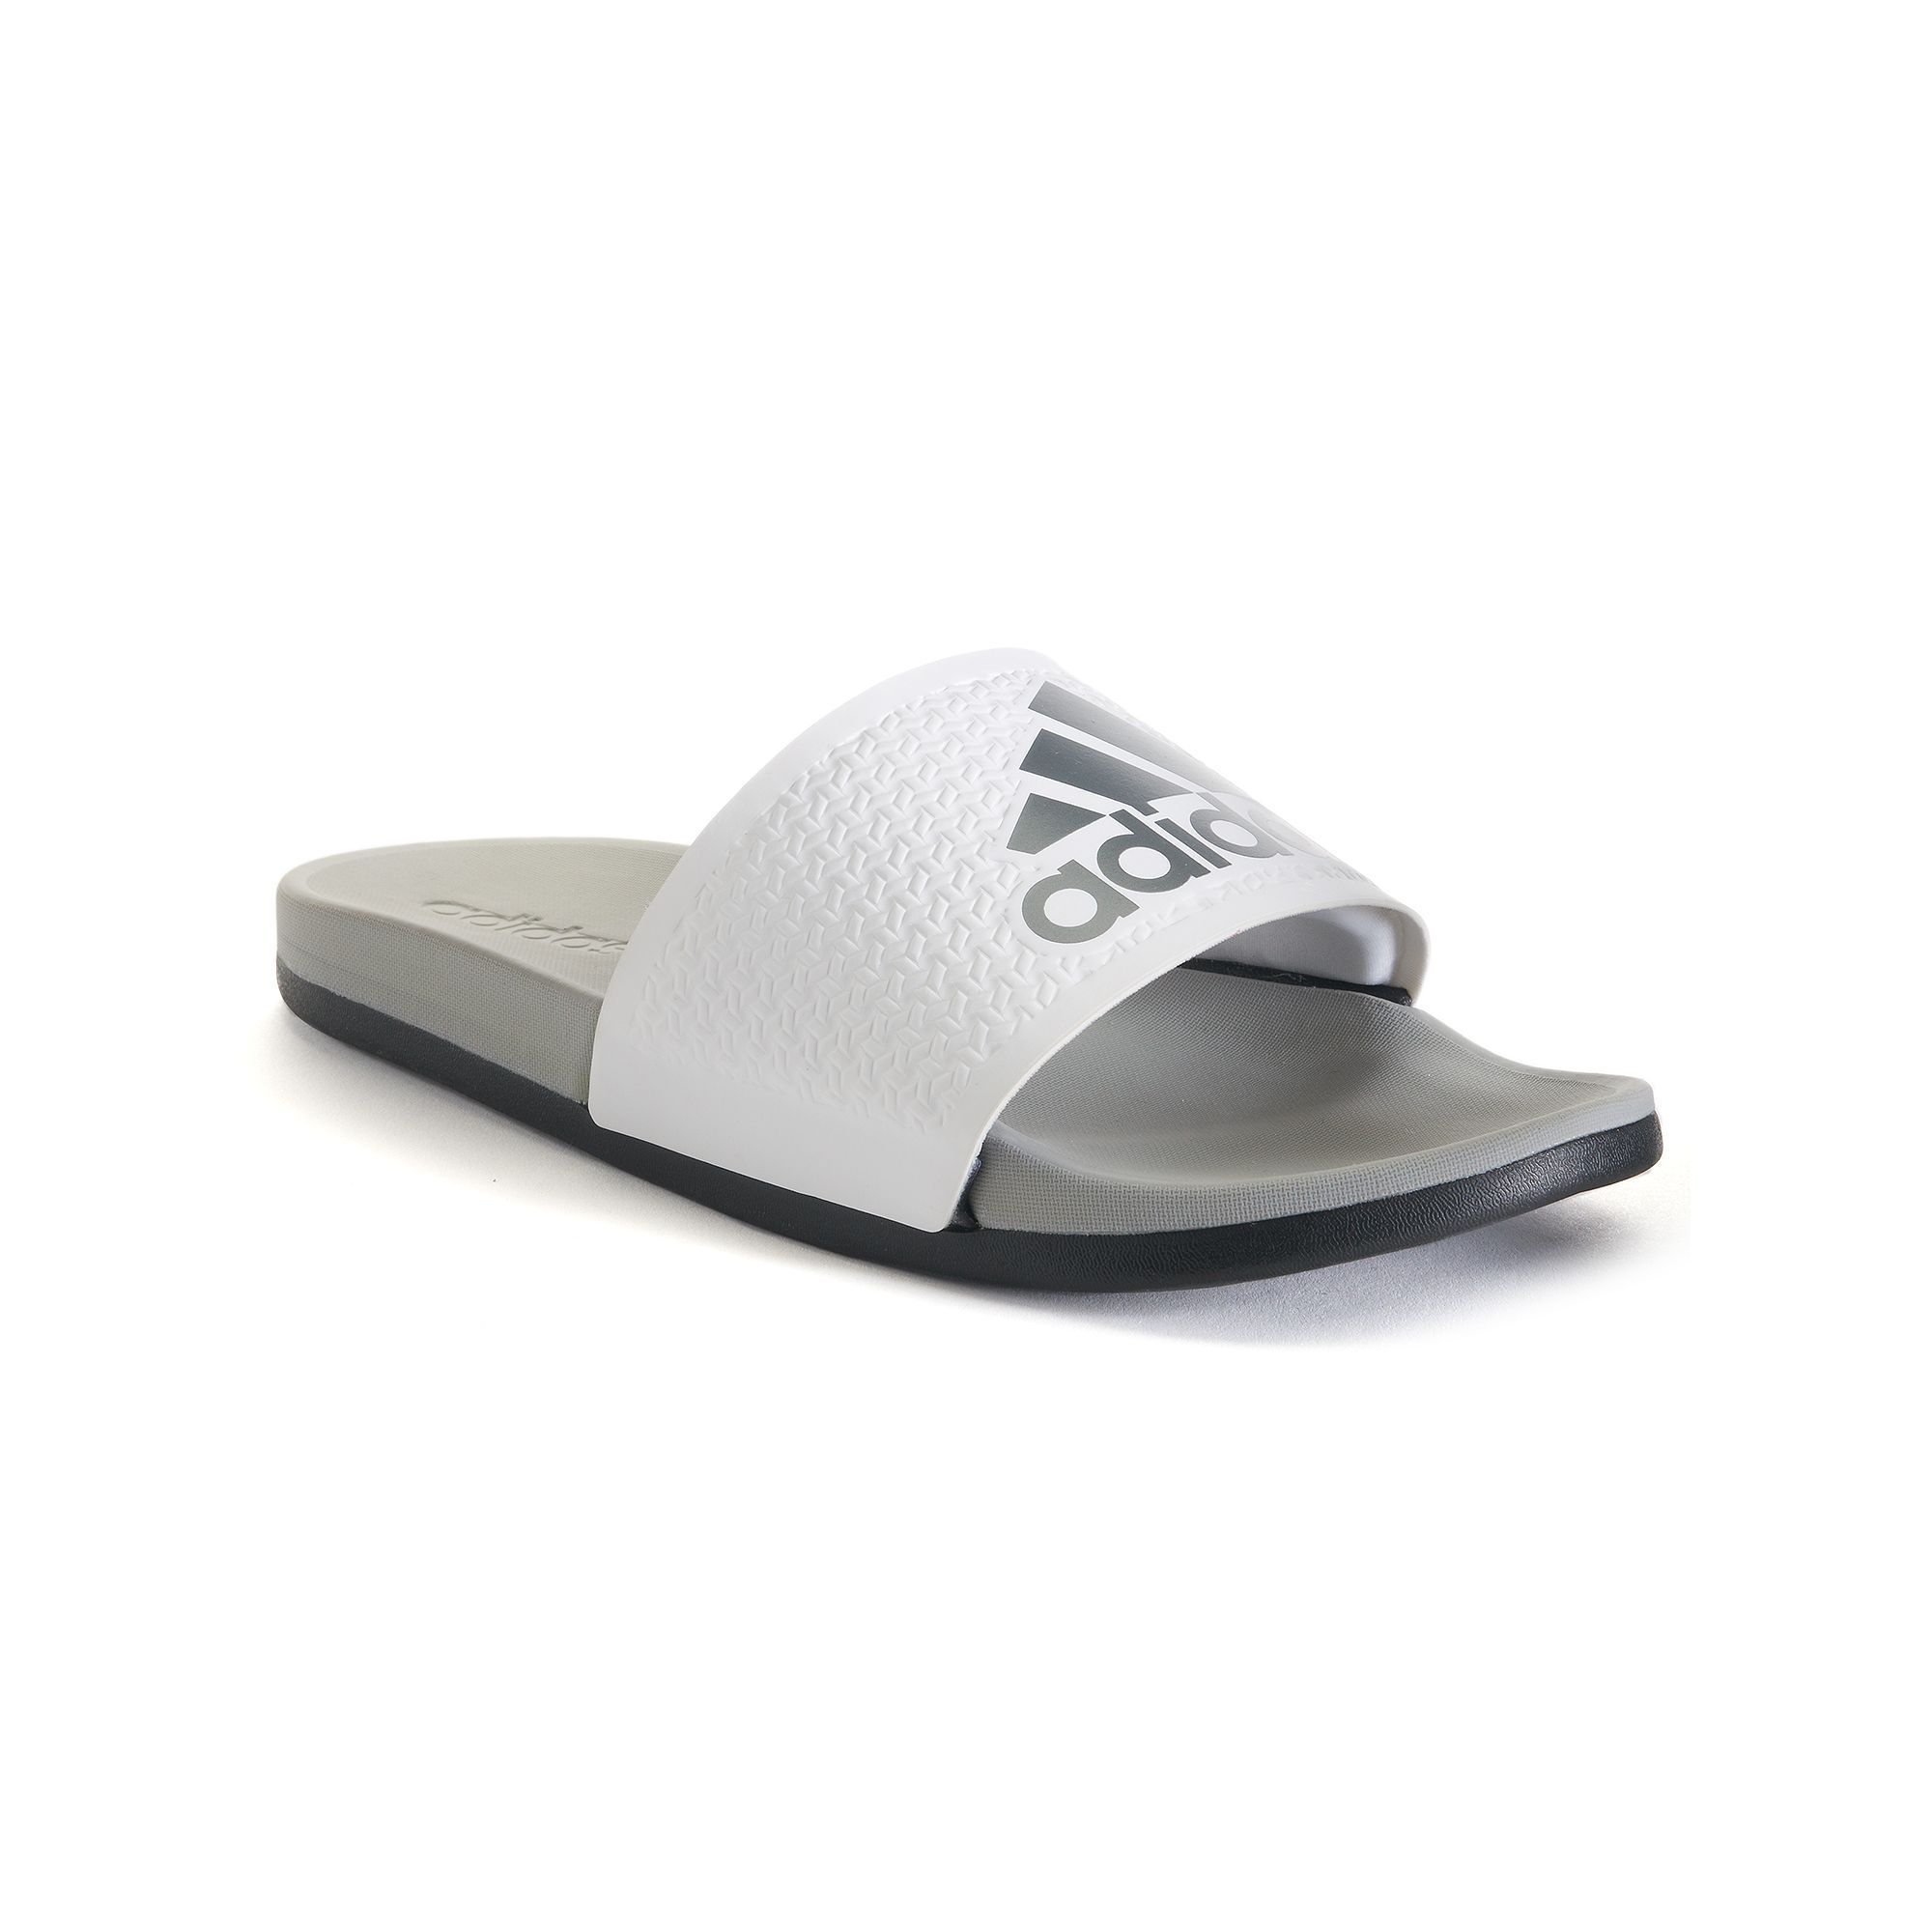 e13050e6f adidas Adilette Supercloud Plus Men s Slide Sandals in 2019 ...